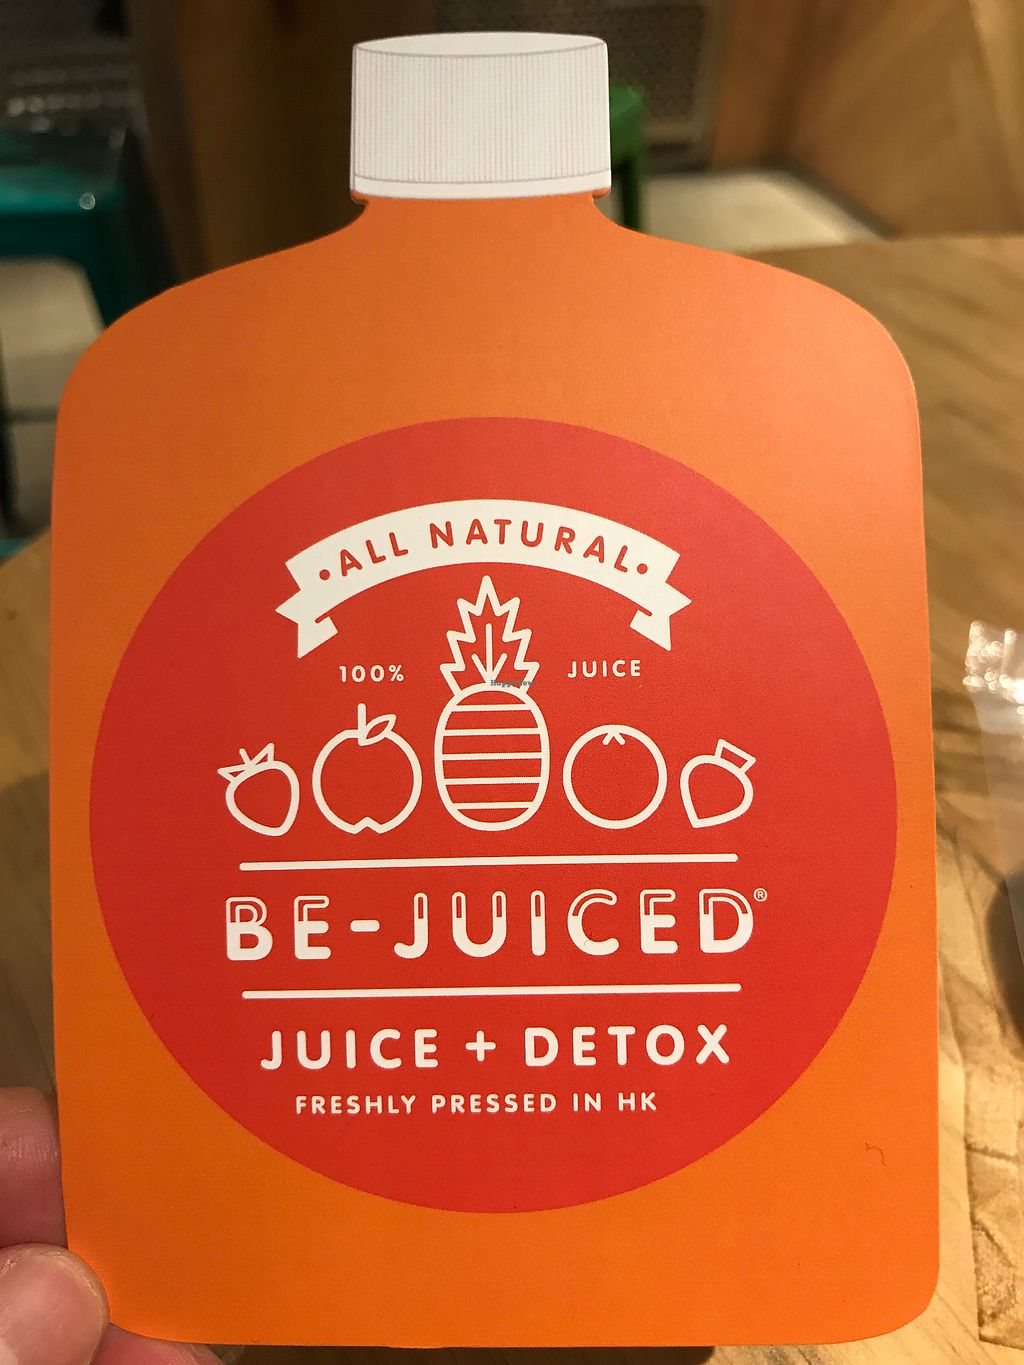 """Photo of Be-Juiced  by <a href=""""/members/profile/carlosccr"""">carlosccr</a> <br/>Coaster <br/> February 21, 2018  - <a href='/contact/abuse/image/65181/361950'>Report</a>"""